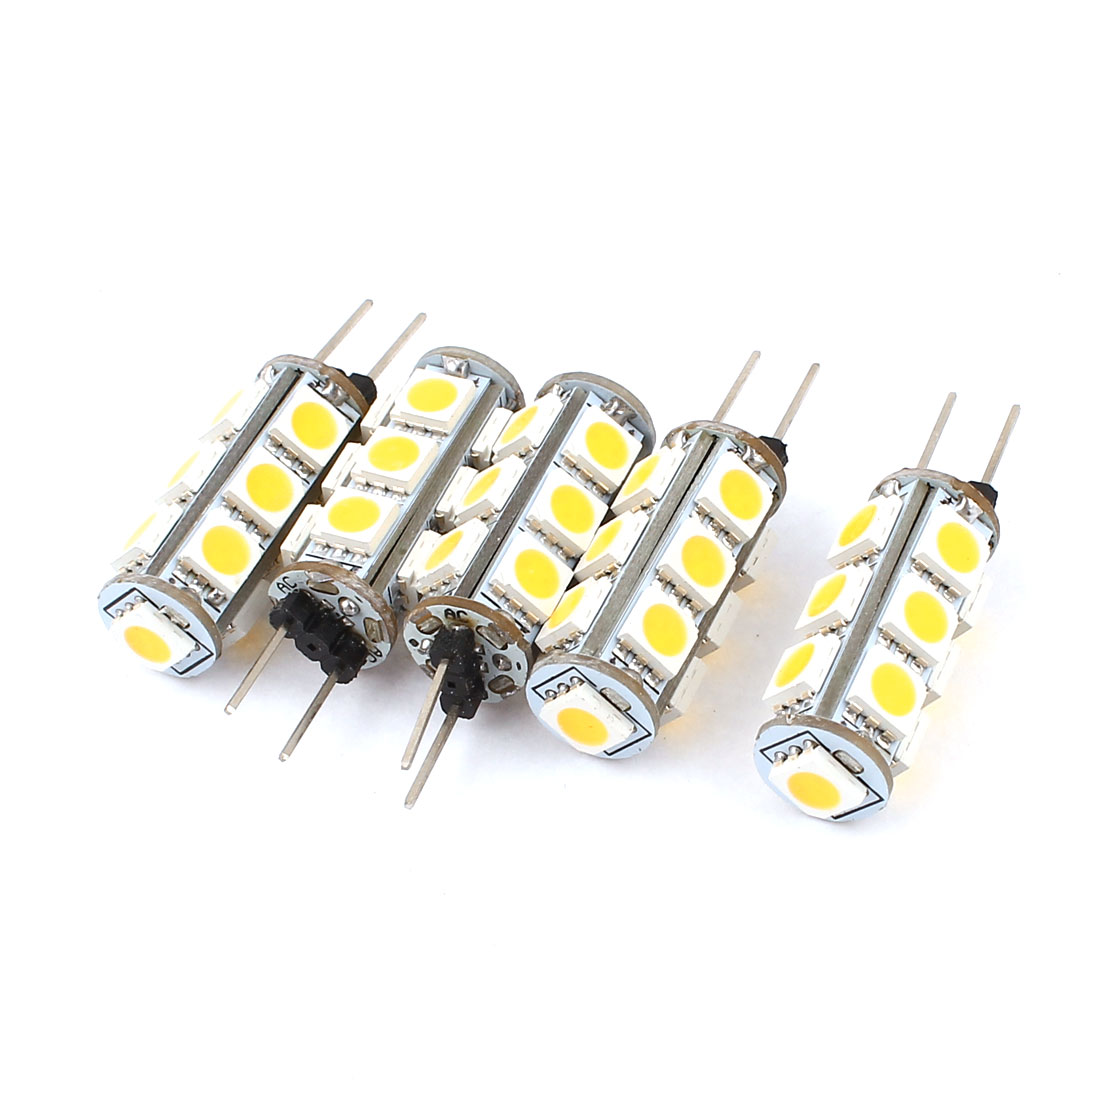 5 x 110-120LM Energy Saving G4 5050 SMD 13 LED Light Bulb Lamp Warm White